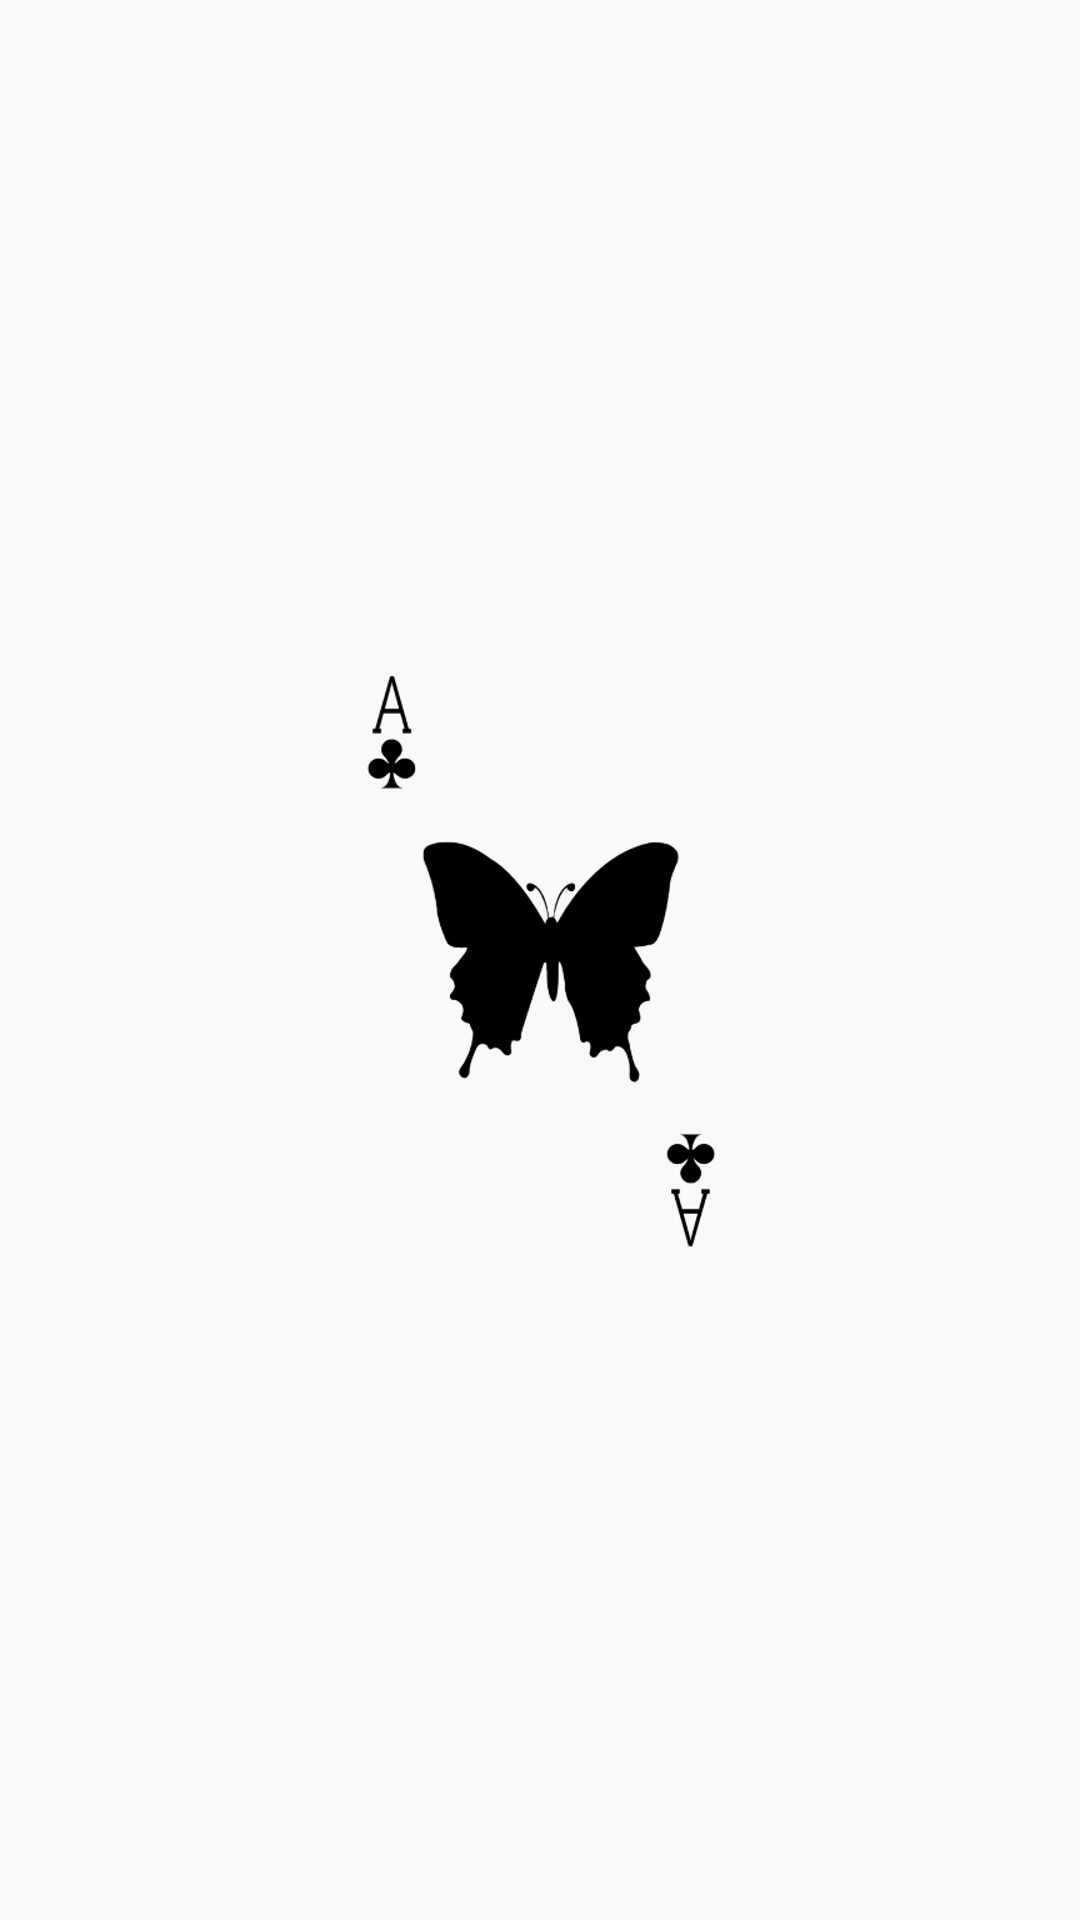 Aesthetic Butterfly Wallpapers Top Free Aesthetic Butterfly